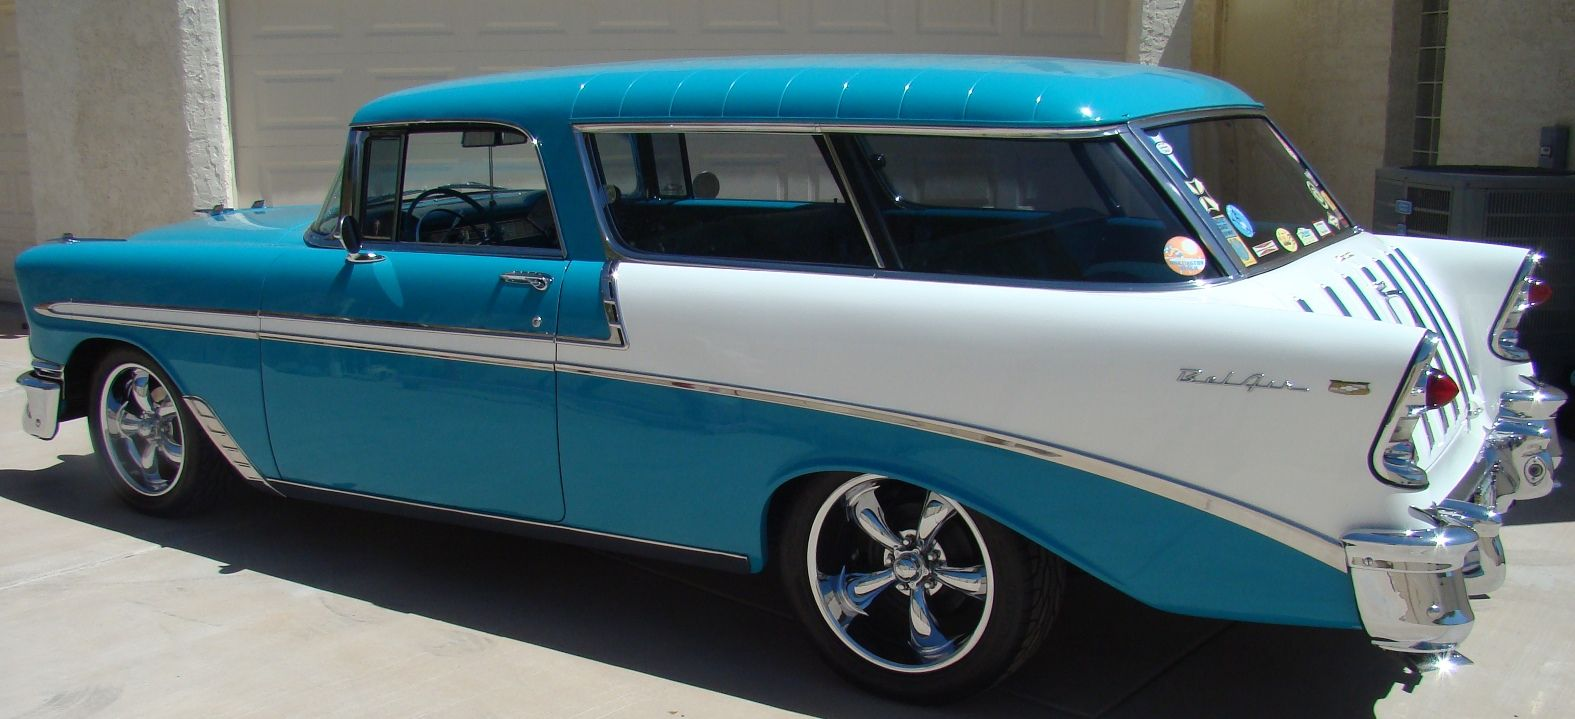 Chevy nomad mike dodsons 1956 chevy nomad wagon side view photo 11 cars pinterest chevy view photos and chevrolet